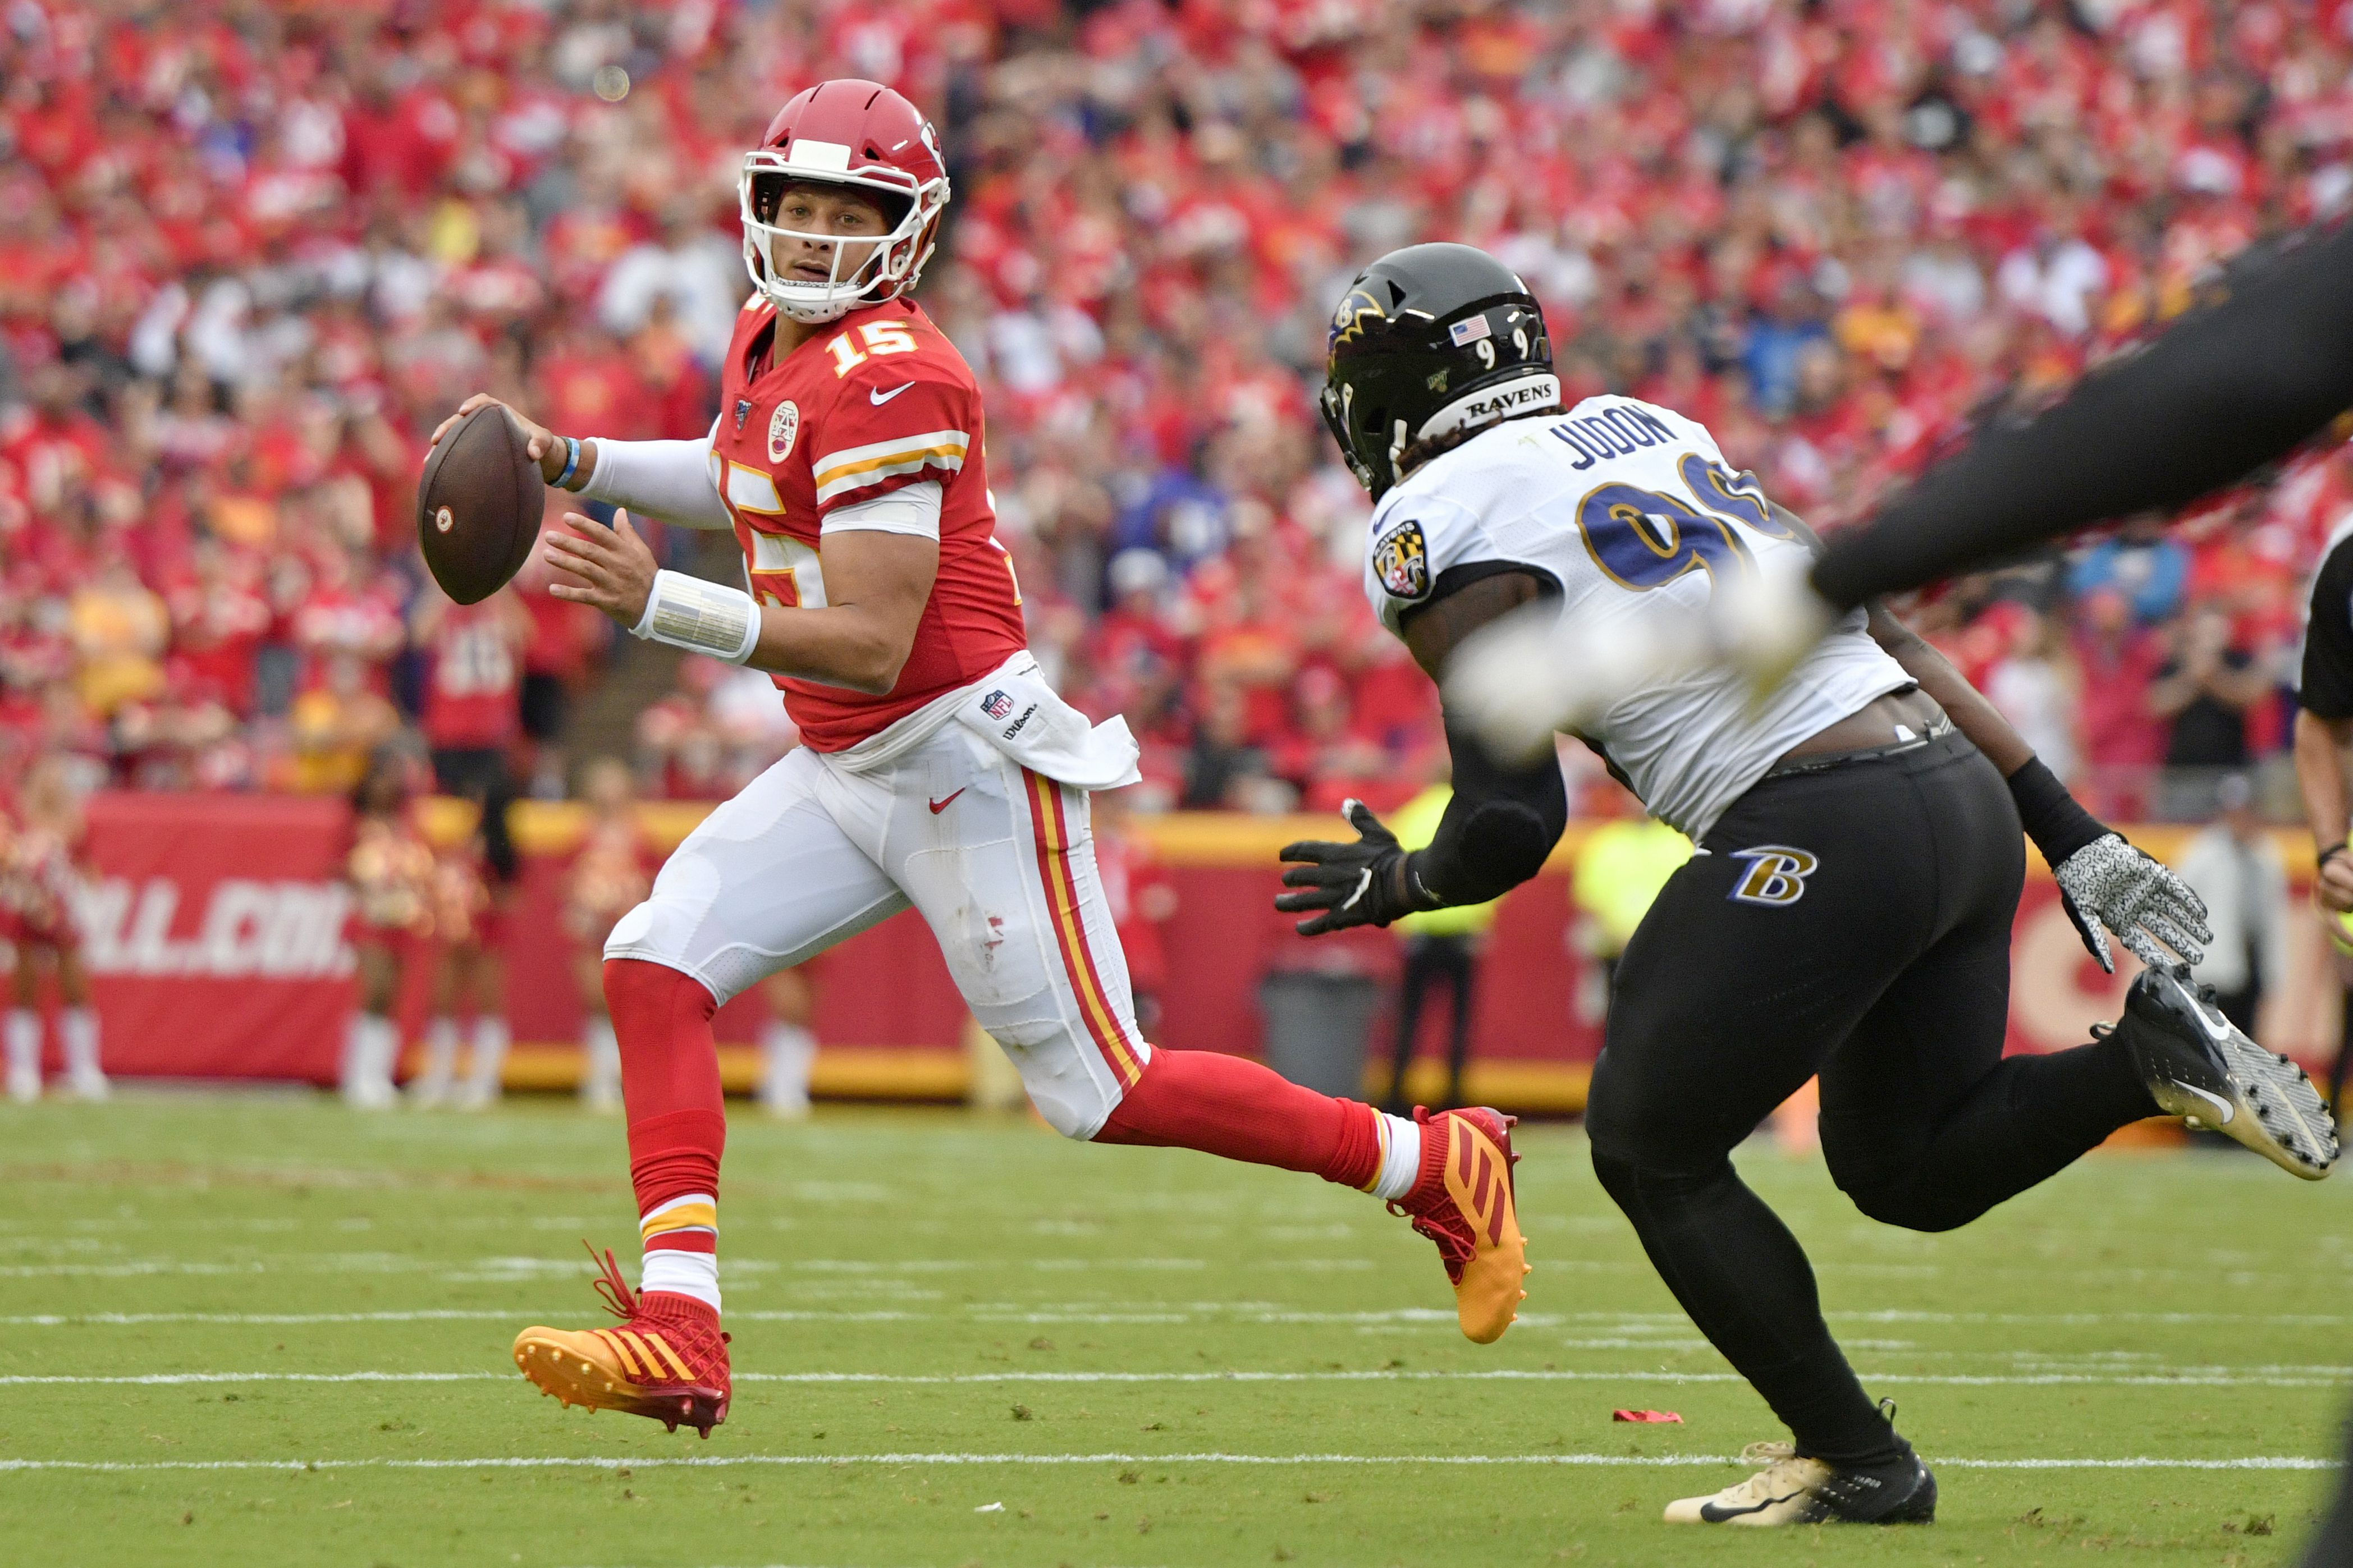 Nfl Schedule 2020 Afc Nfc Playoff Predictions Chiefs 49ers Control Road To Super Bowl Matchups Wild Cards Byes Nj Com